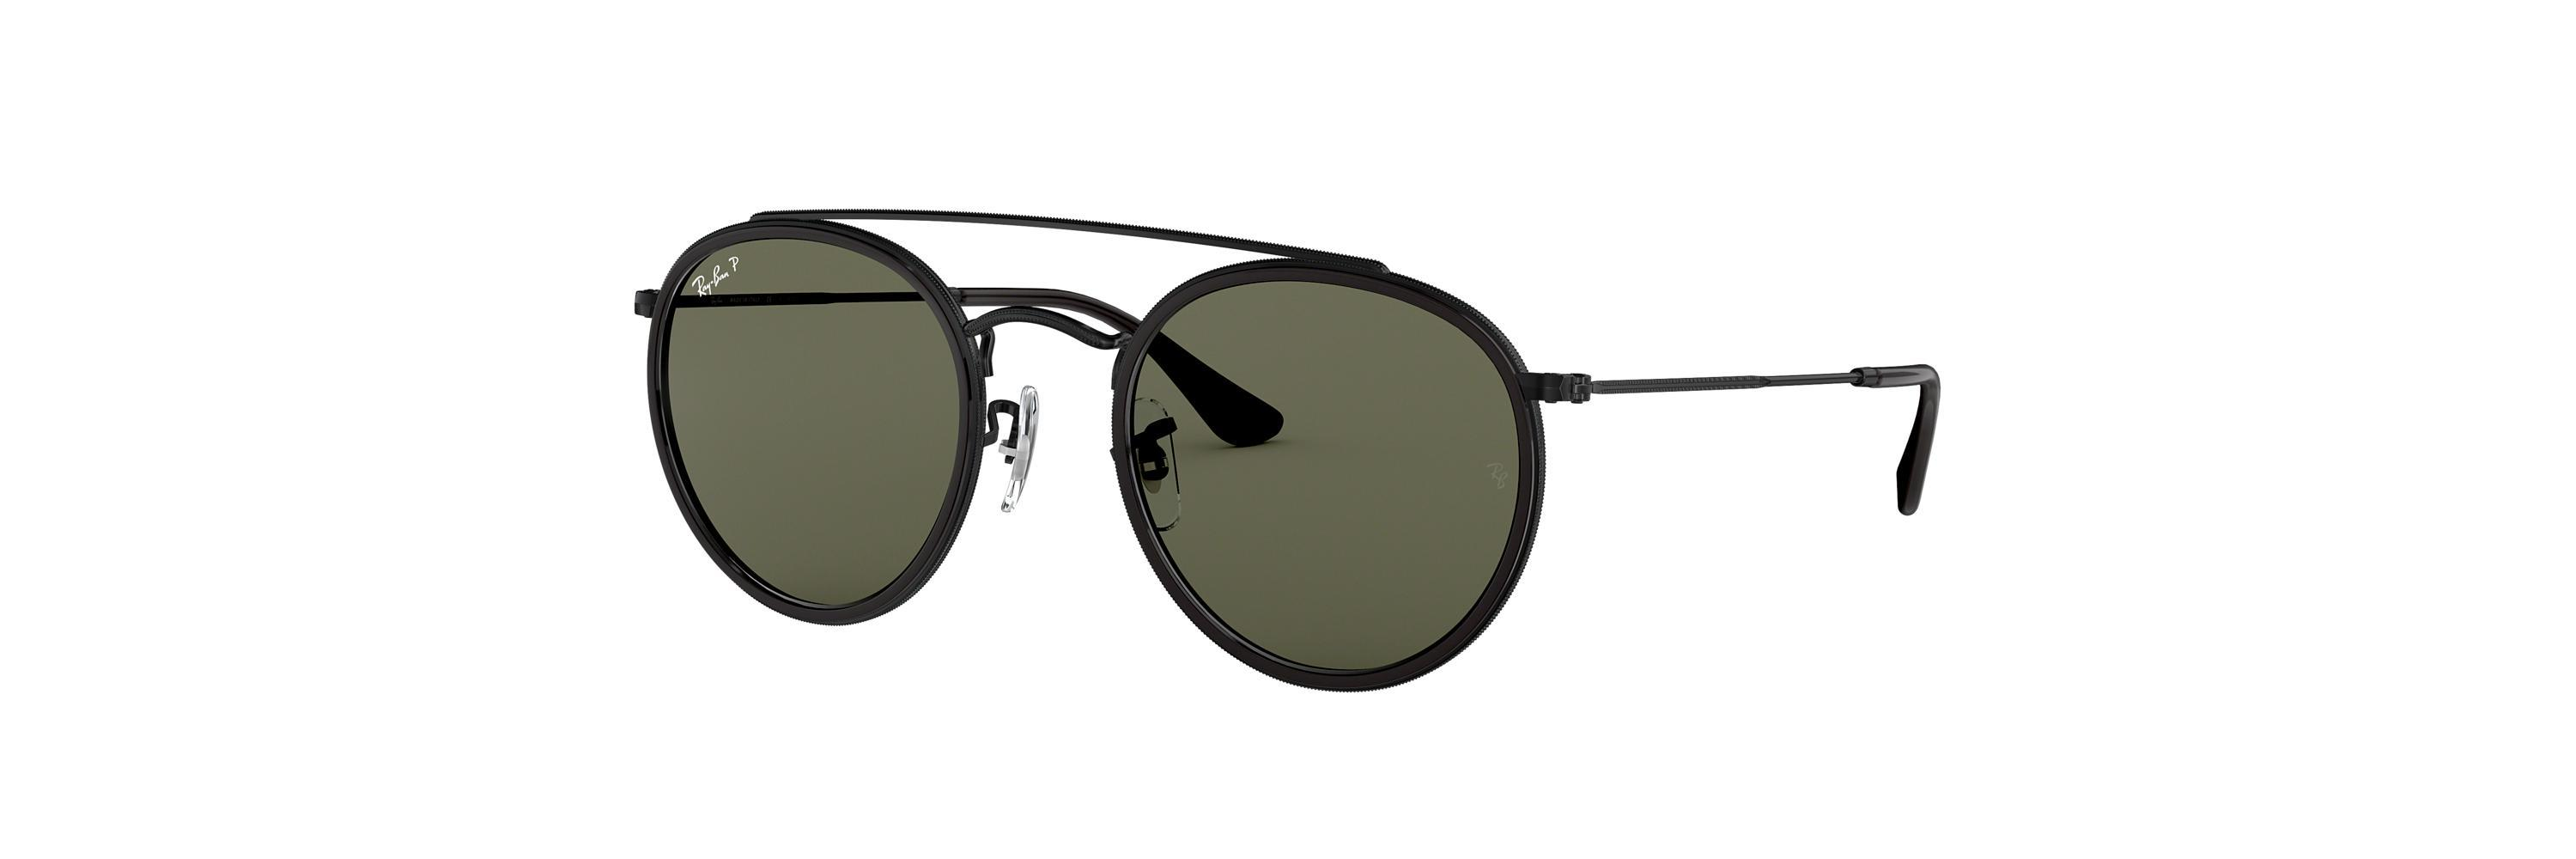 3ab38835865 Ray-Ban - Multicolor Rb3647n Flat Lens - Lyst. View fullscreen